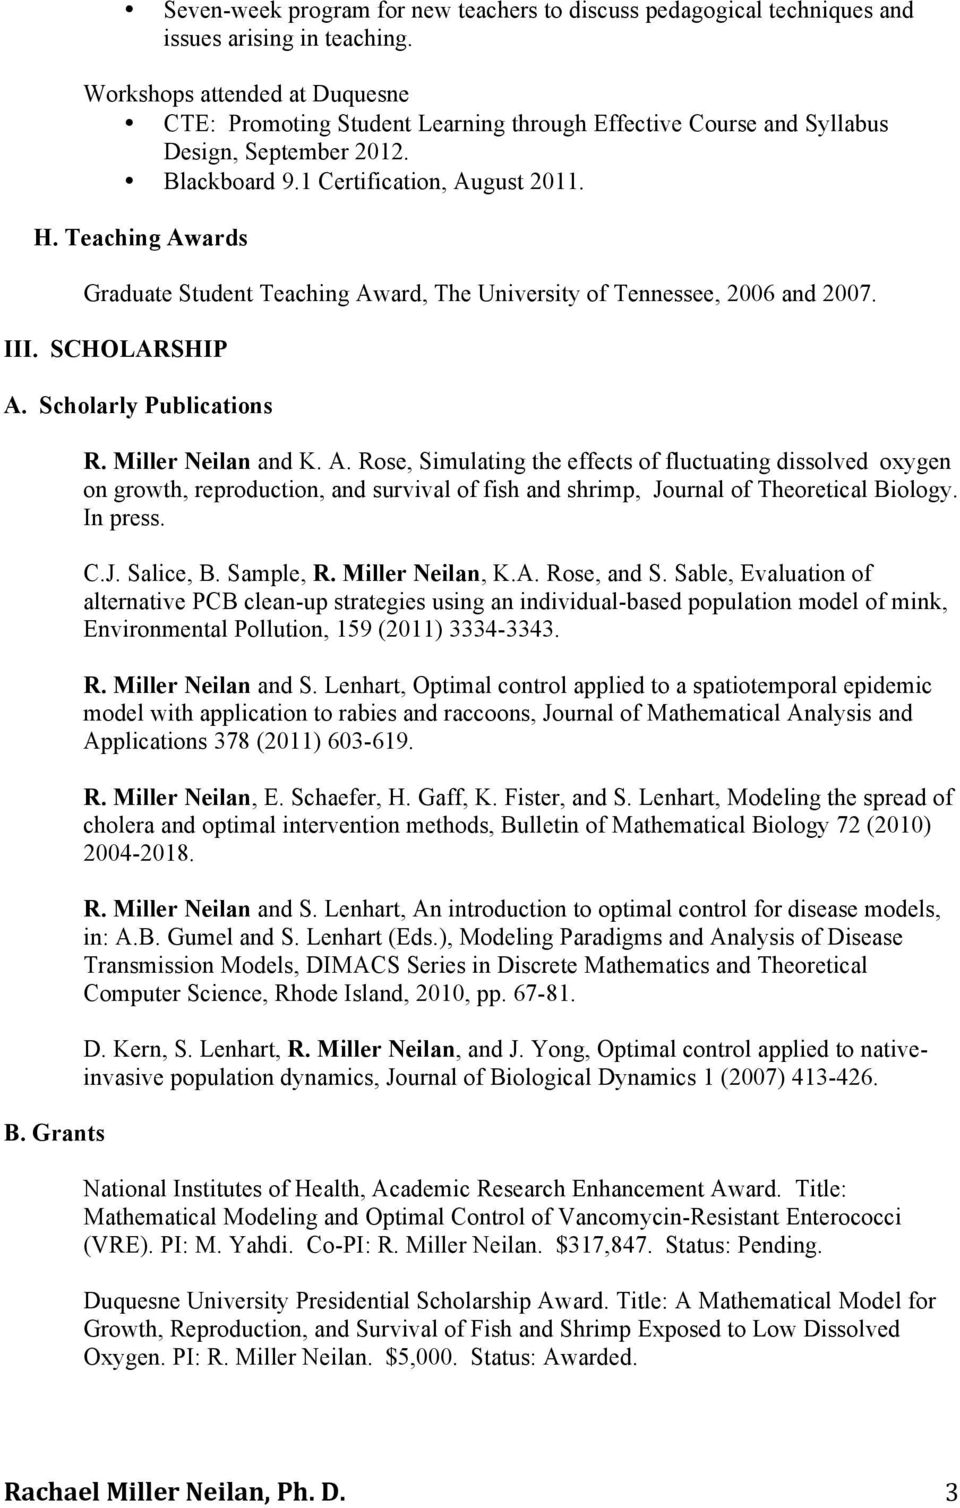 Teaching Awards Graduate Student Teaching Award, The University of Tennessee, 2006 and 2007. III. SCHOLARSHIP A. Scholarly Publications B. Grants R. Miller Neilan and K. A. Rose, Simulating the effects of fluctuating dissolved oxygen on growth, reproduction, and survival of fish and shrimp, Journal of Theoretical Biology.